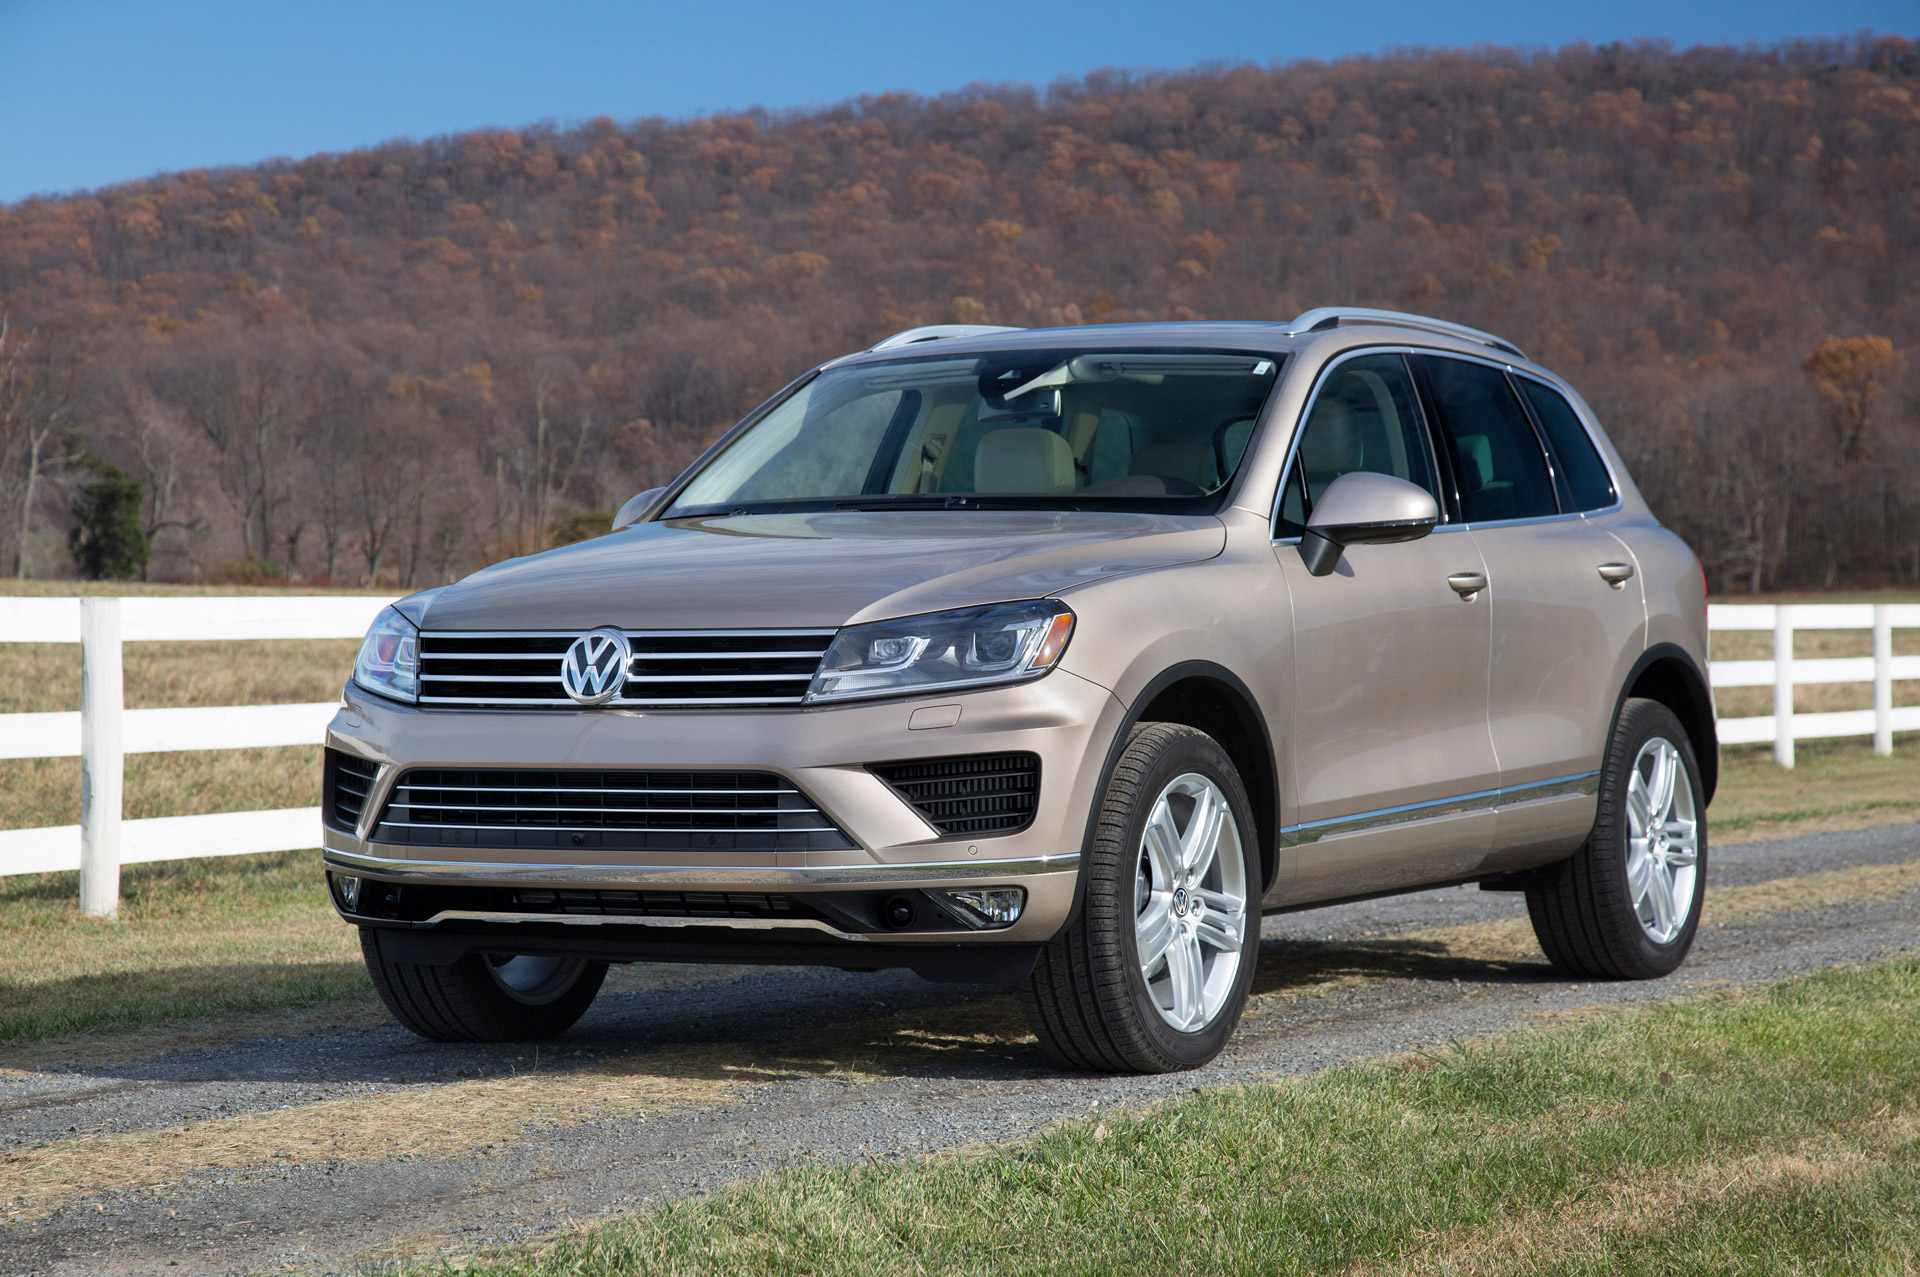 2016 Volkswagen Touareg Vw Performance Review The Car